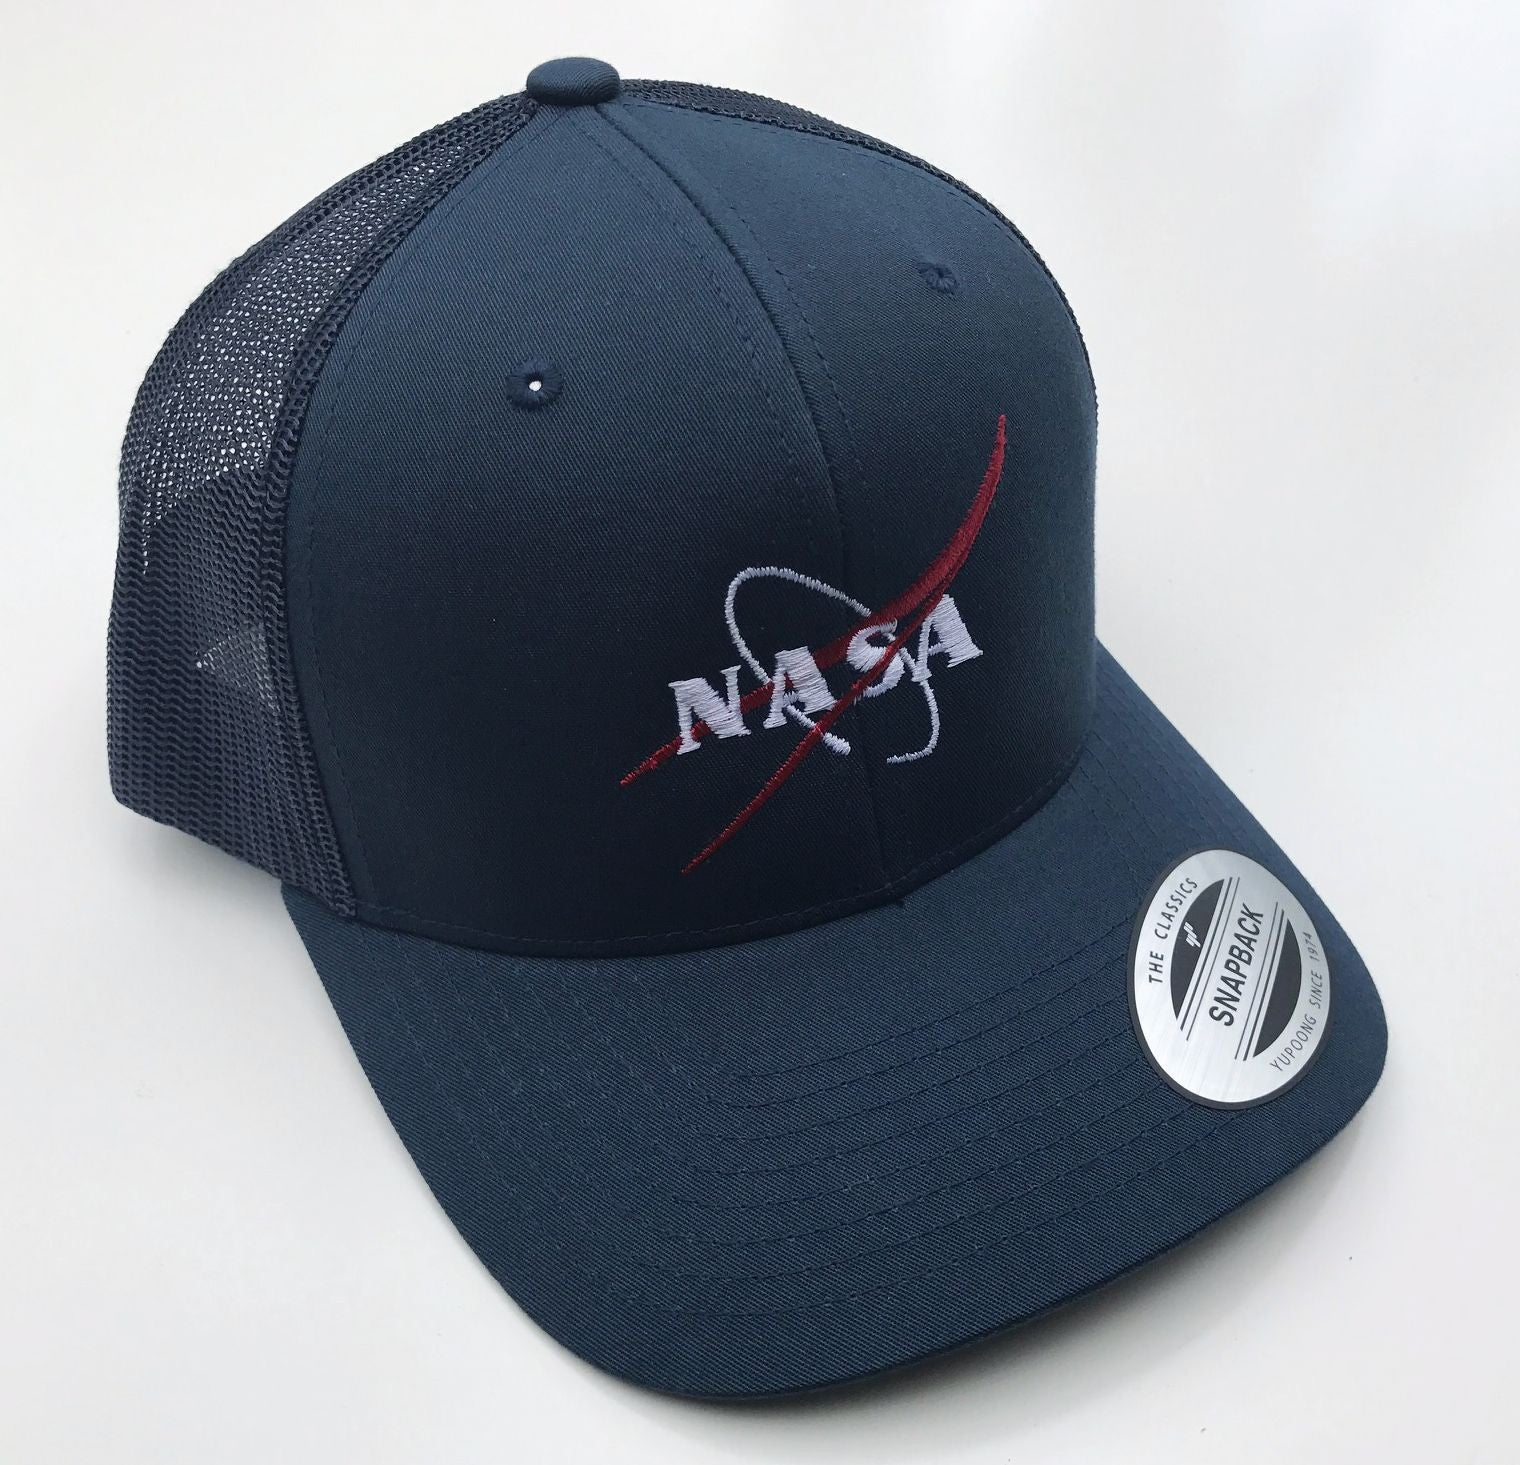 Shop NASA Vector Logo Trucker Cap - NEW for 2017! Online from The ... 8b6c32a4cba1